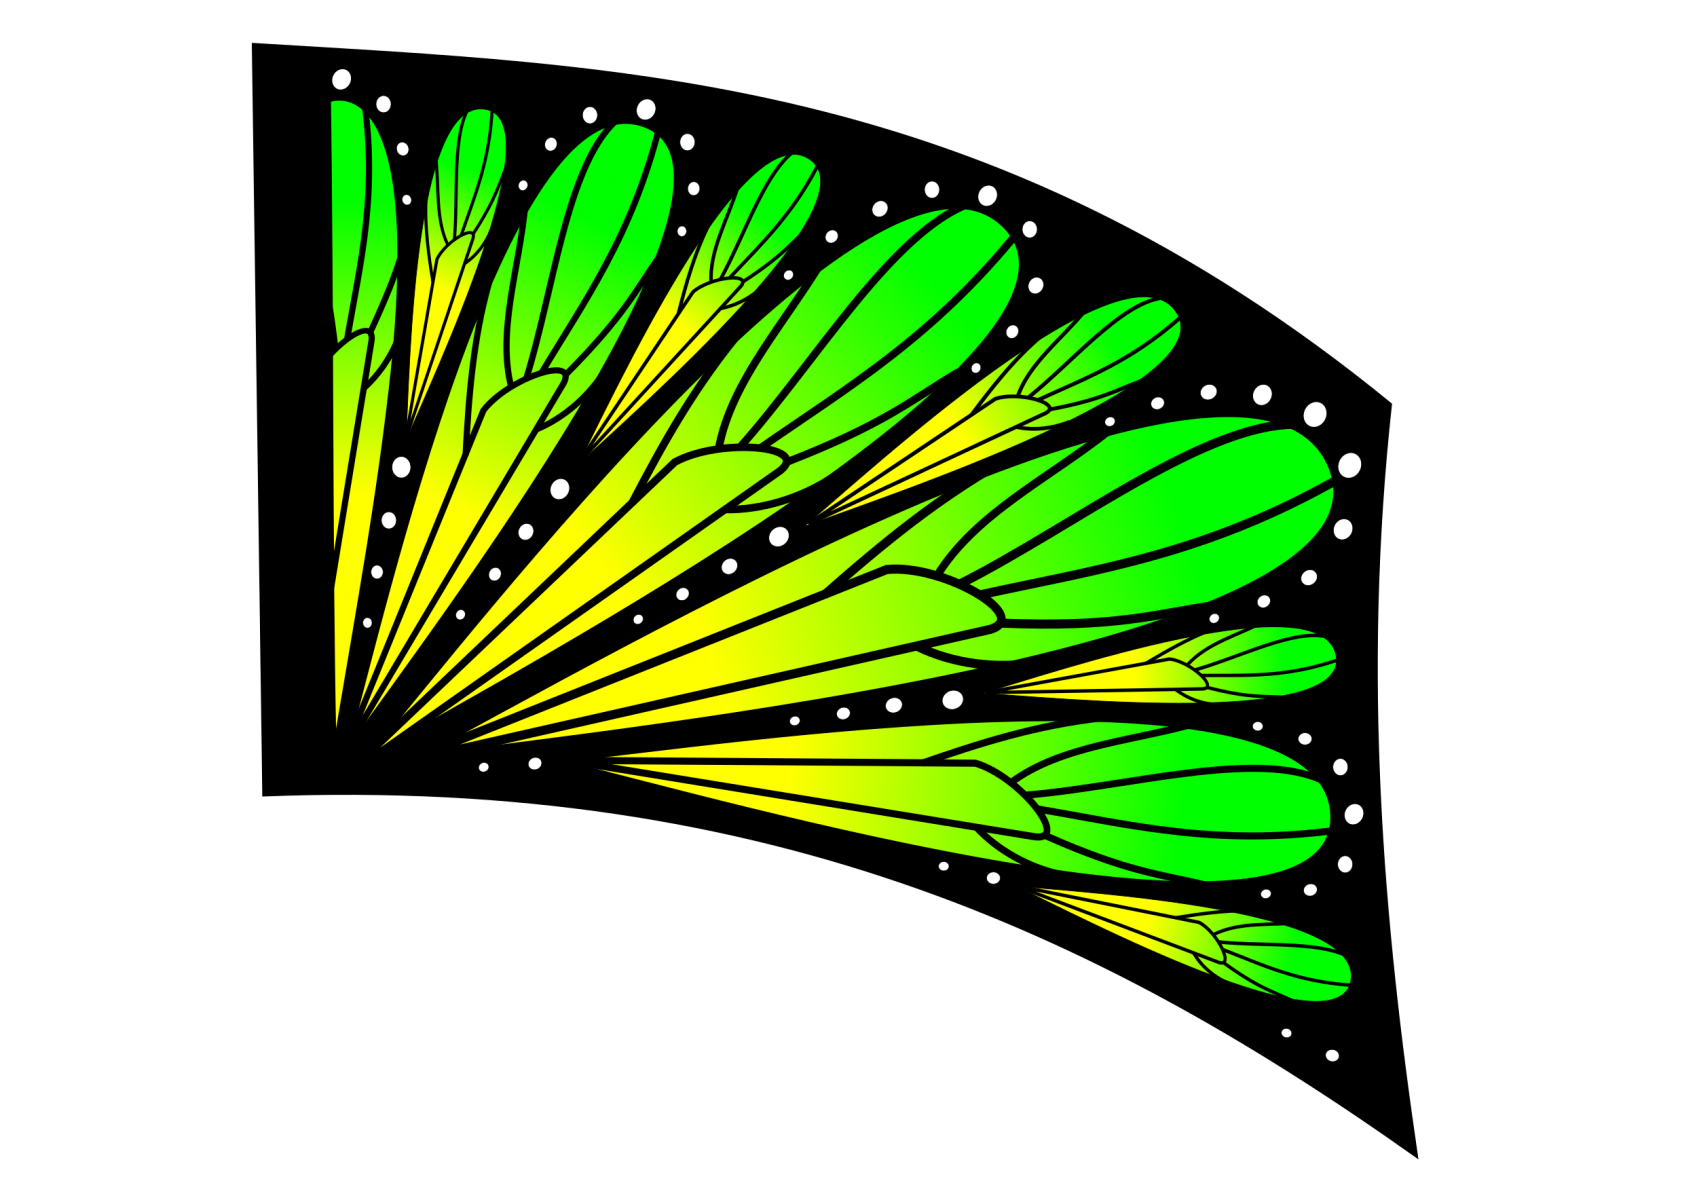 070503s - 36x54 Standard Yellow-Green Ombre Butterfly